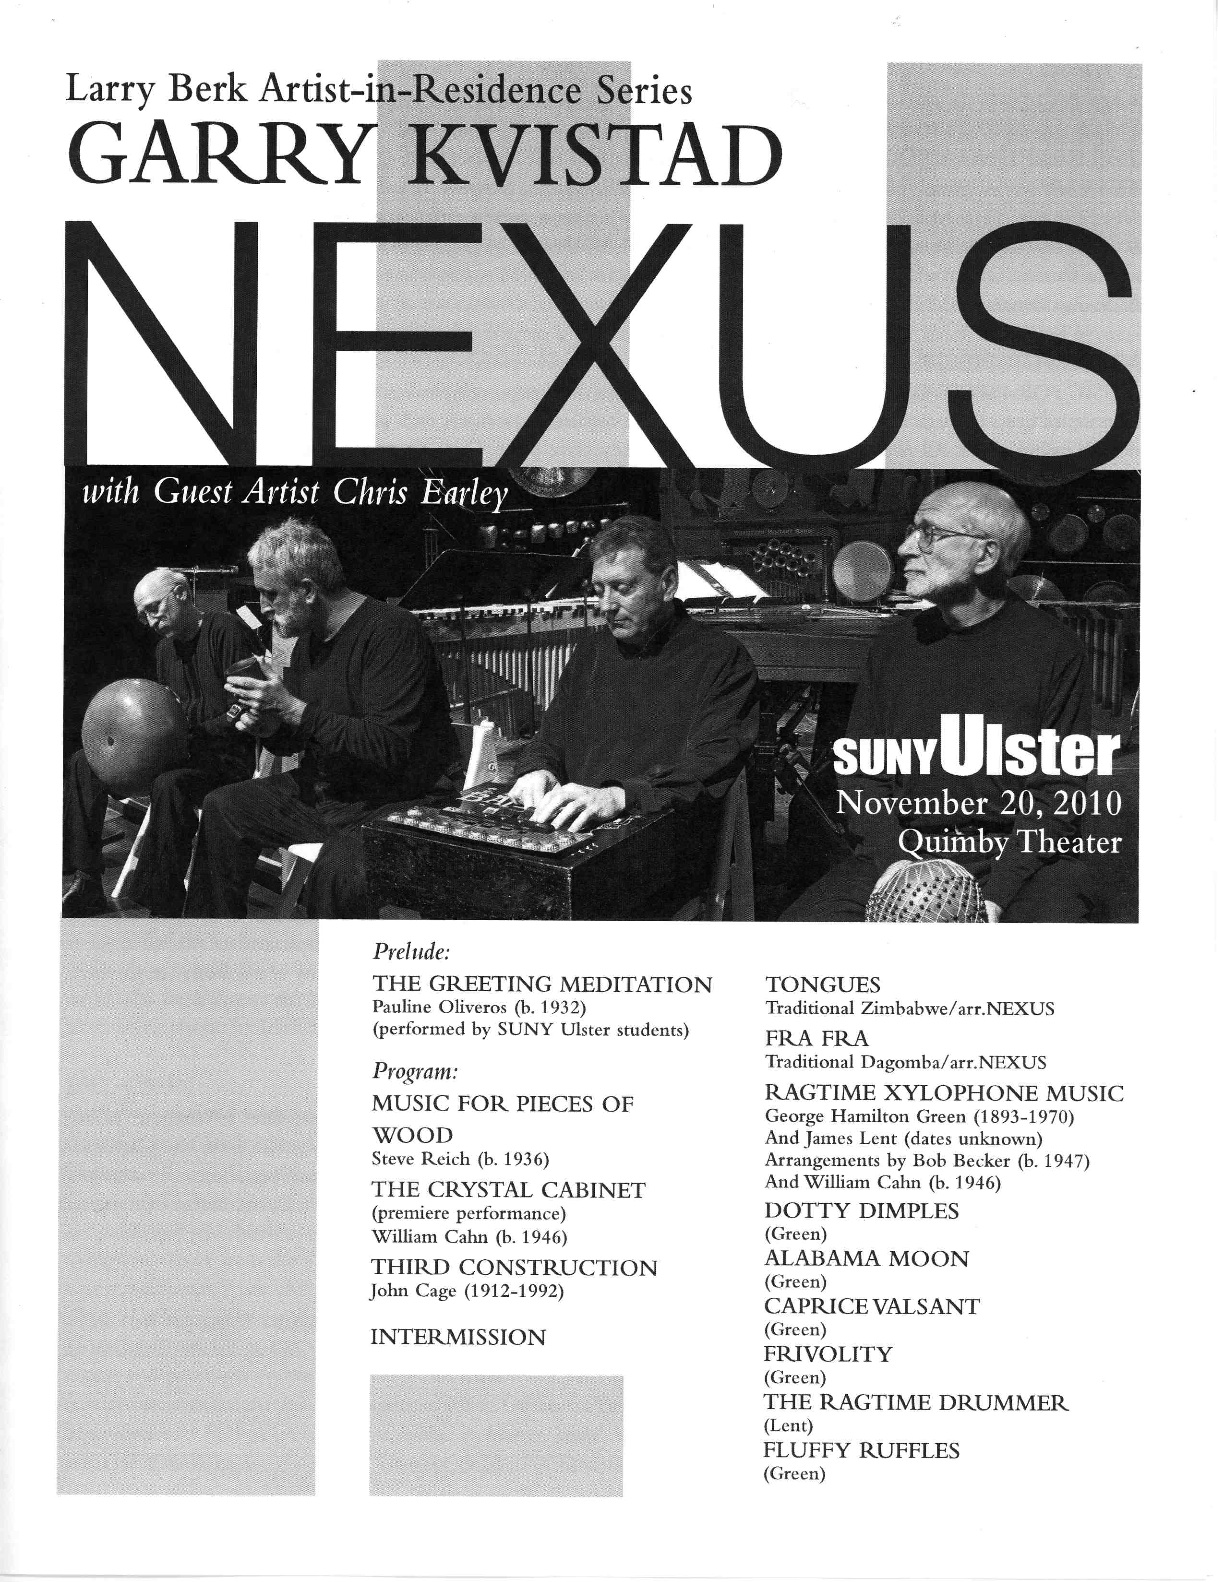 Another Premiere for NEXUS – November 20, 2010